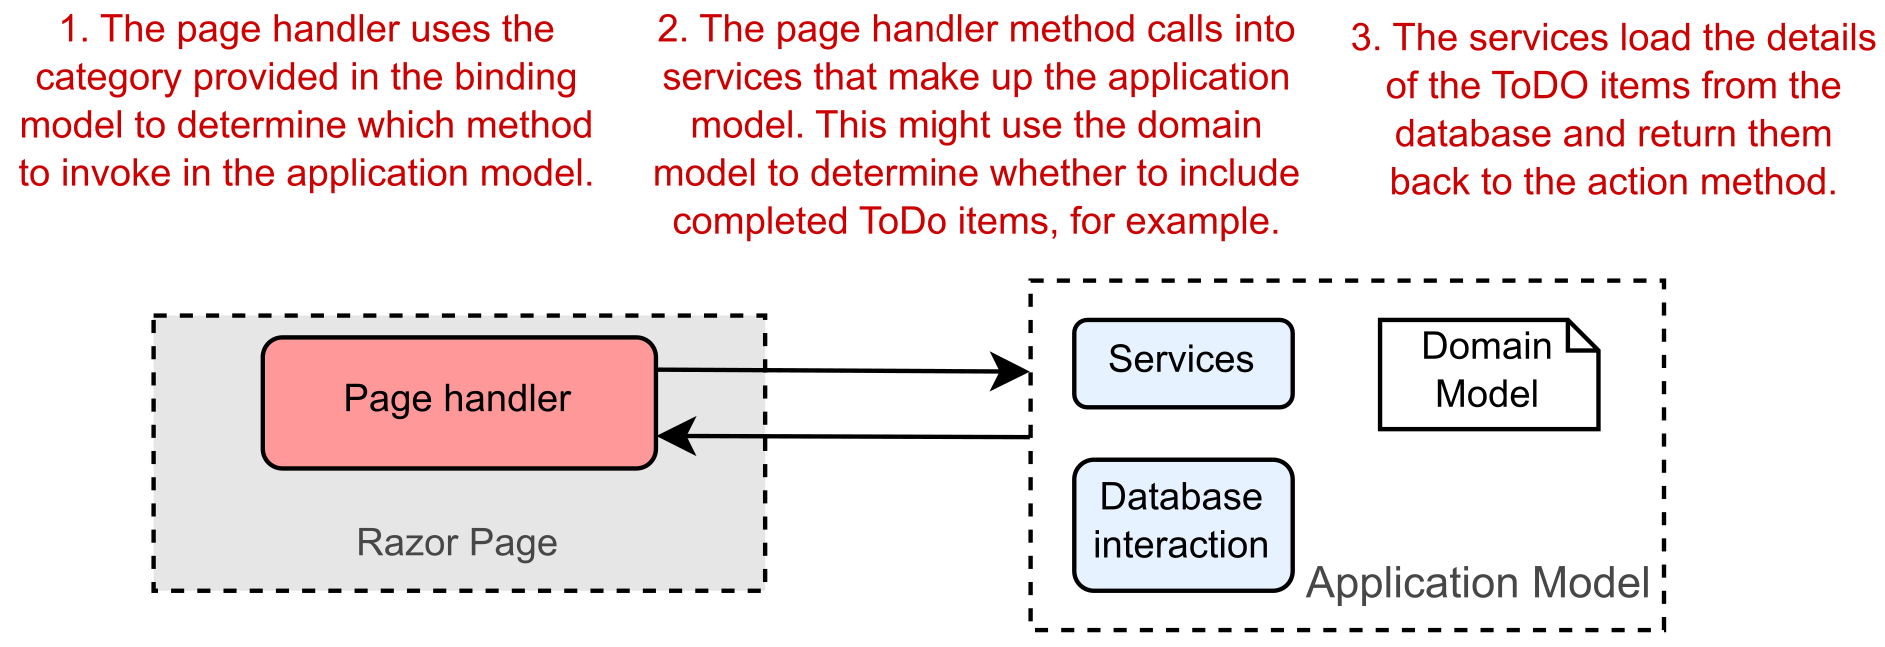 Image showing a page handler calling methods in the application model